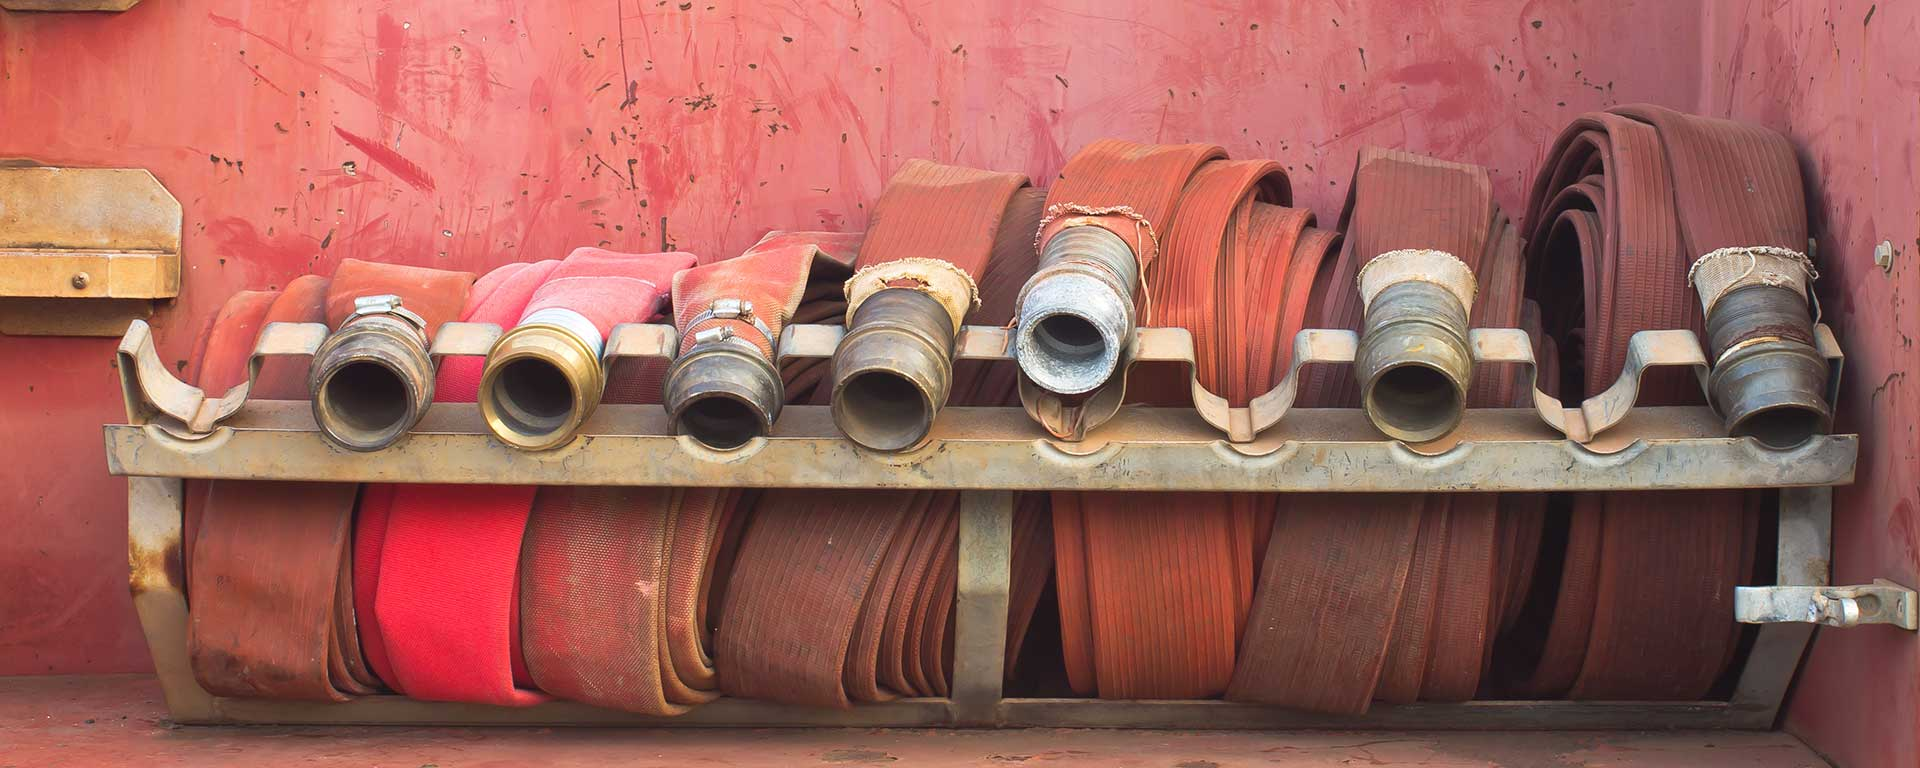 Fire Hoses lined up